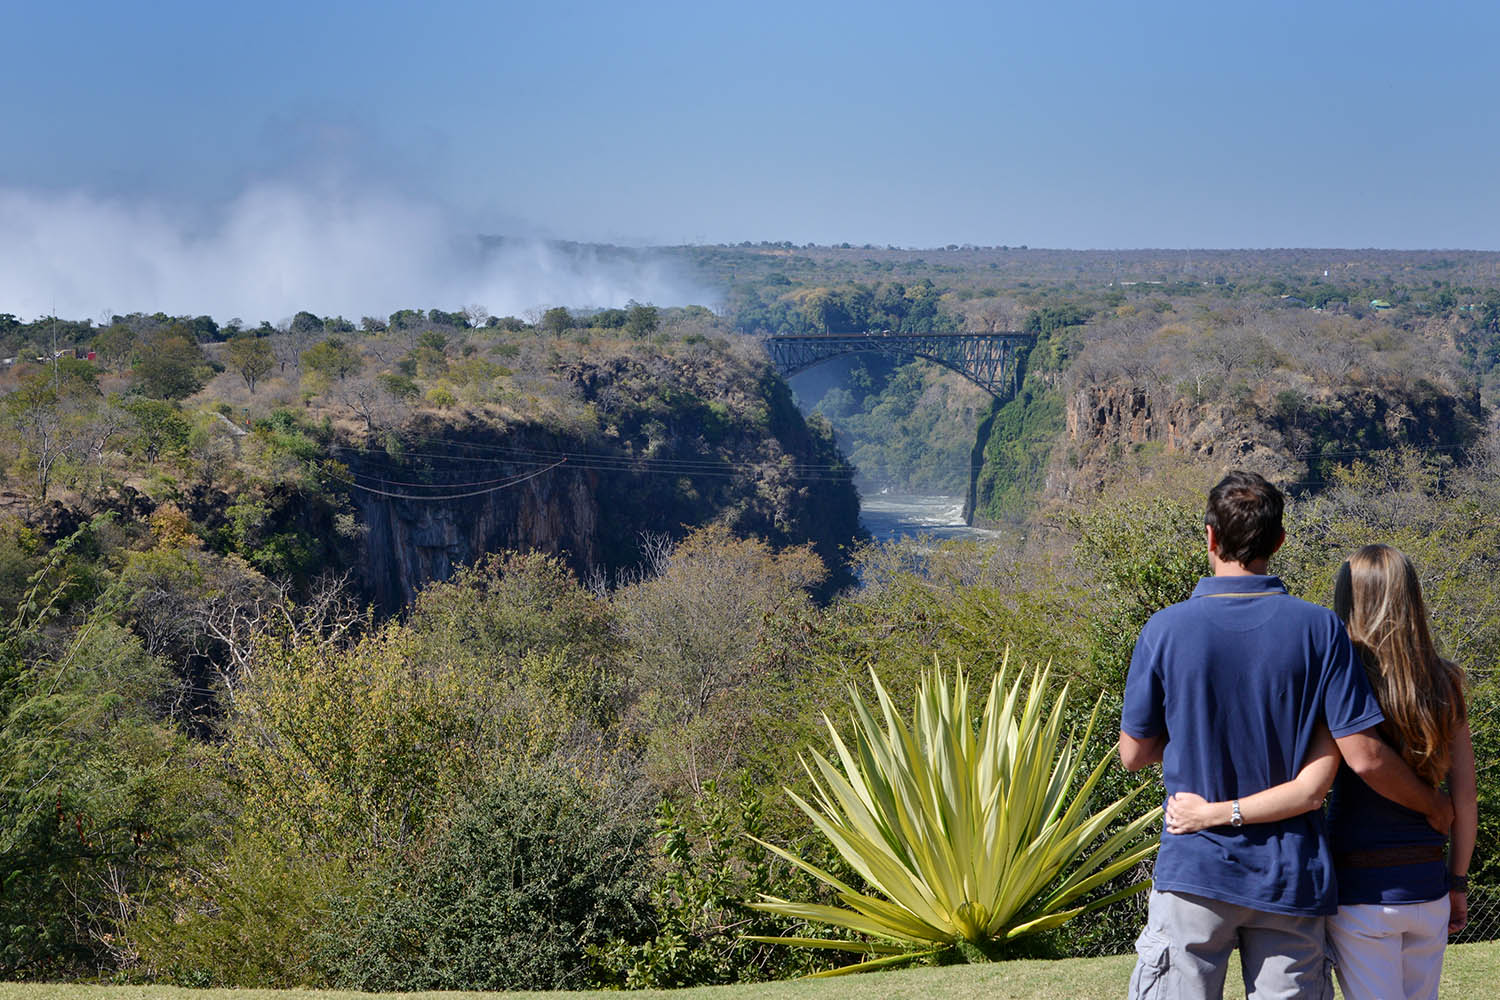 zambia points of interest malawian-style-malawi-adventures-experiences-specialist-tour-operator-victoria-falls